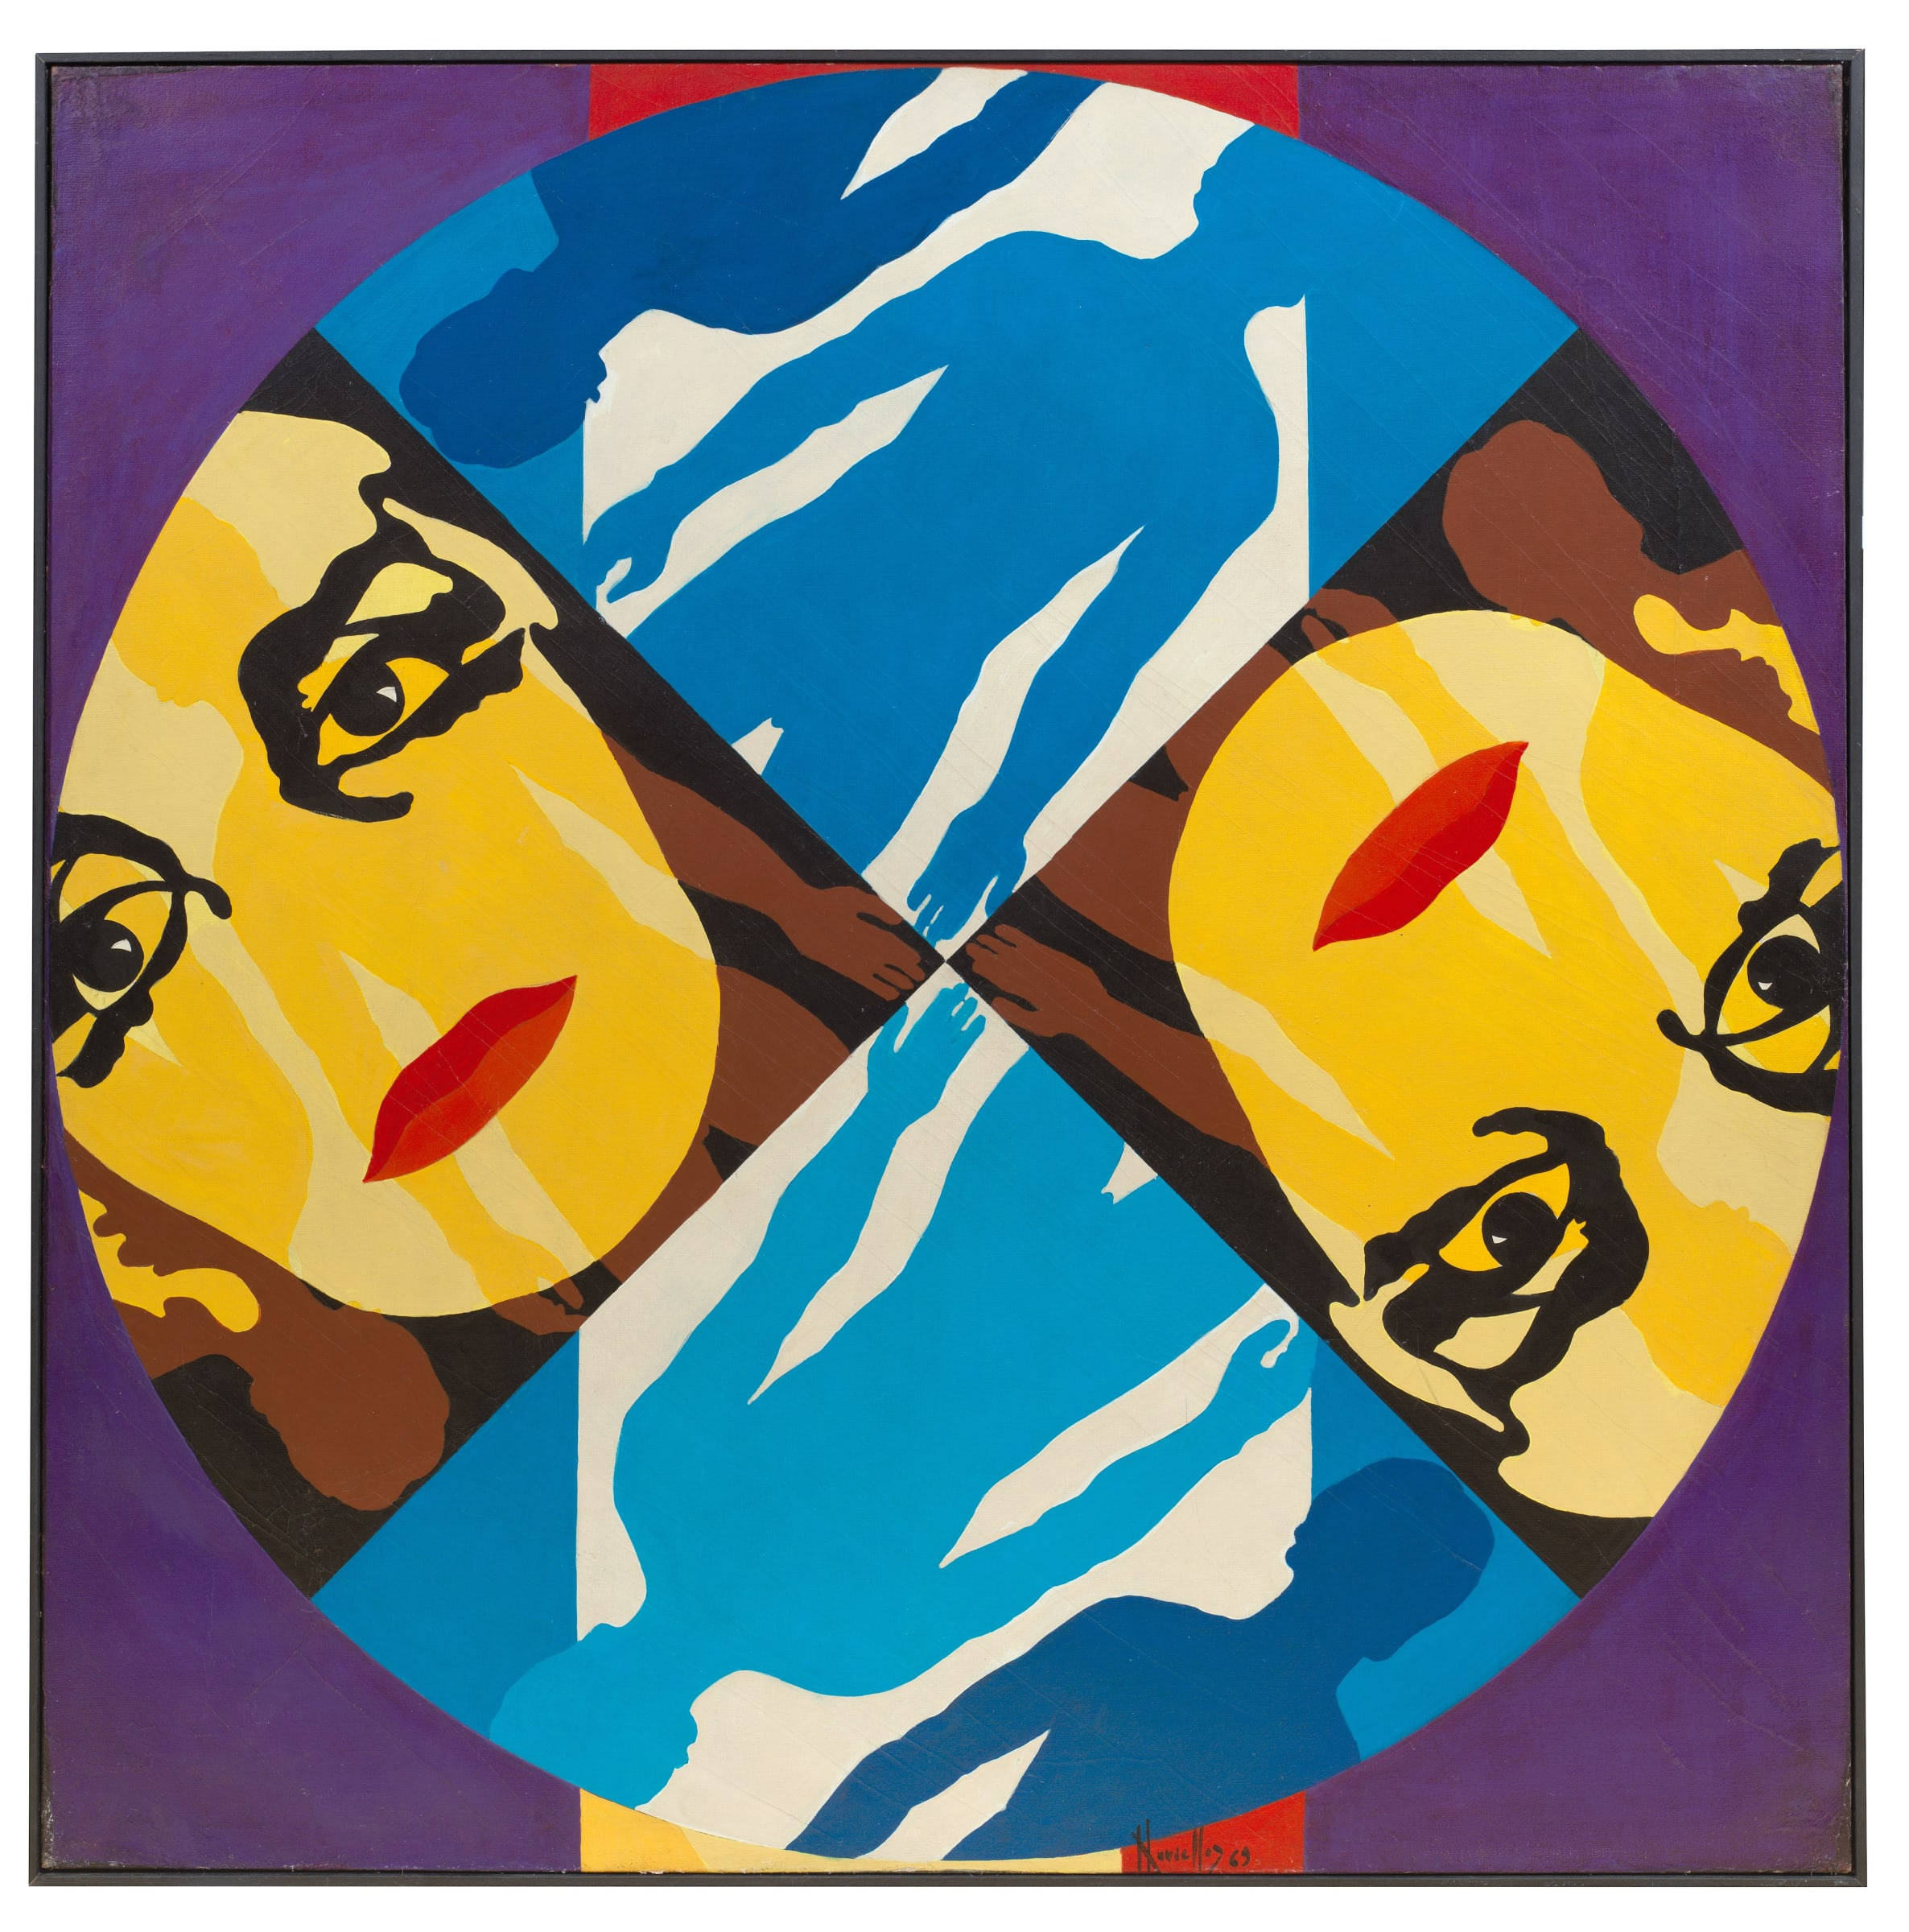 "<span class=""link fancybox-details-link""><a href=""/artists/244-decio-noviello/works/11065-decio-noviello-untitled-circular-composition-1969/"">View Detail Page</a></span><div class=""artist""><span class=""artist""><strong>DÉCIO NOVIELLO</strong></span></div>